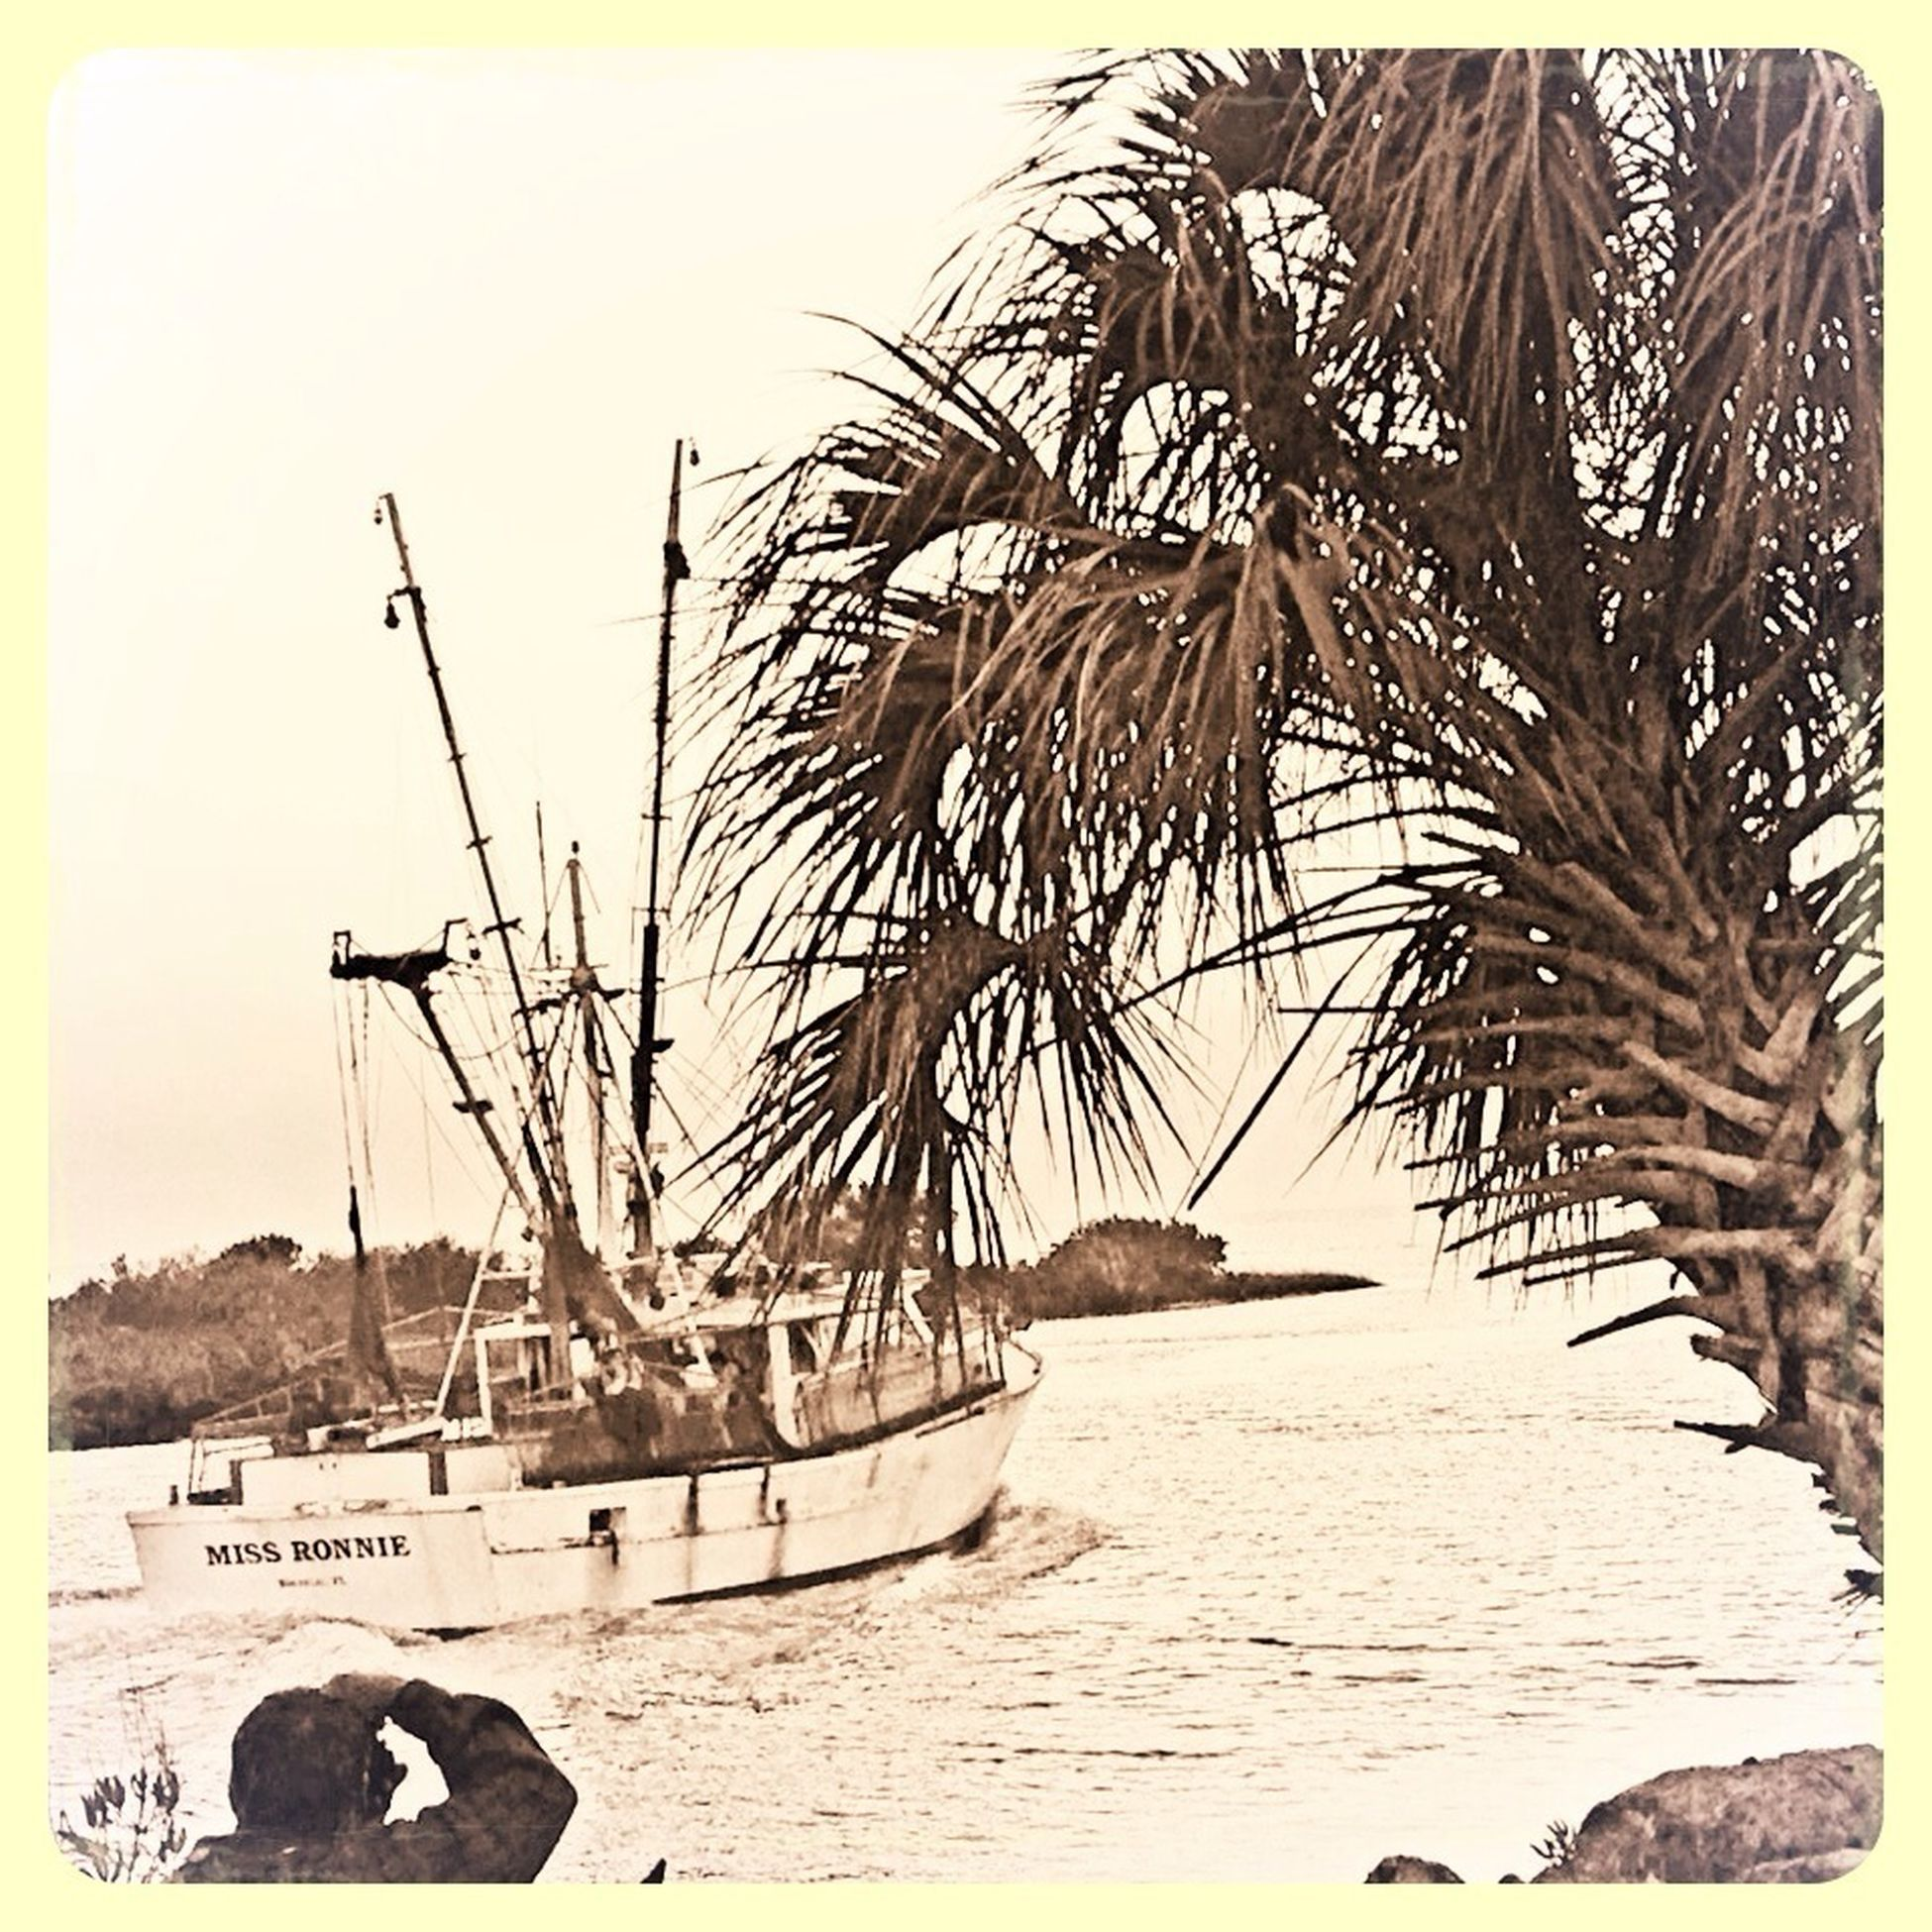 nautical vessel, palm tree, water, outdoors, boat, sea, beach, moored, mode of transport, silhouette, shore, sky, ship, sand, transportation, vessel, watercraft, craft, transportation, vehicle, ship, transport, pirate, sank, wreck, conveyance, animal, echinoderm, echinoids, urchins, freshwater, marine, tropical climate, cold, cold temperature, winter, environmental conservation